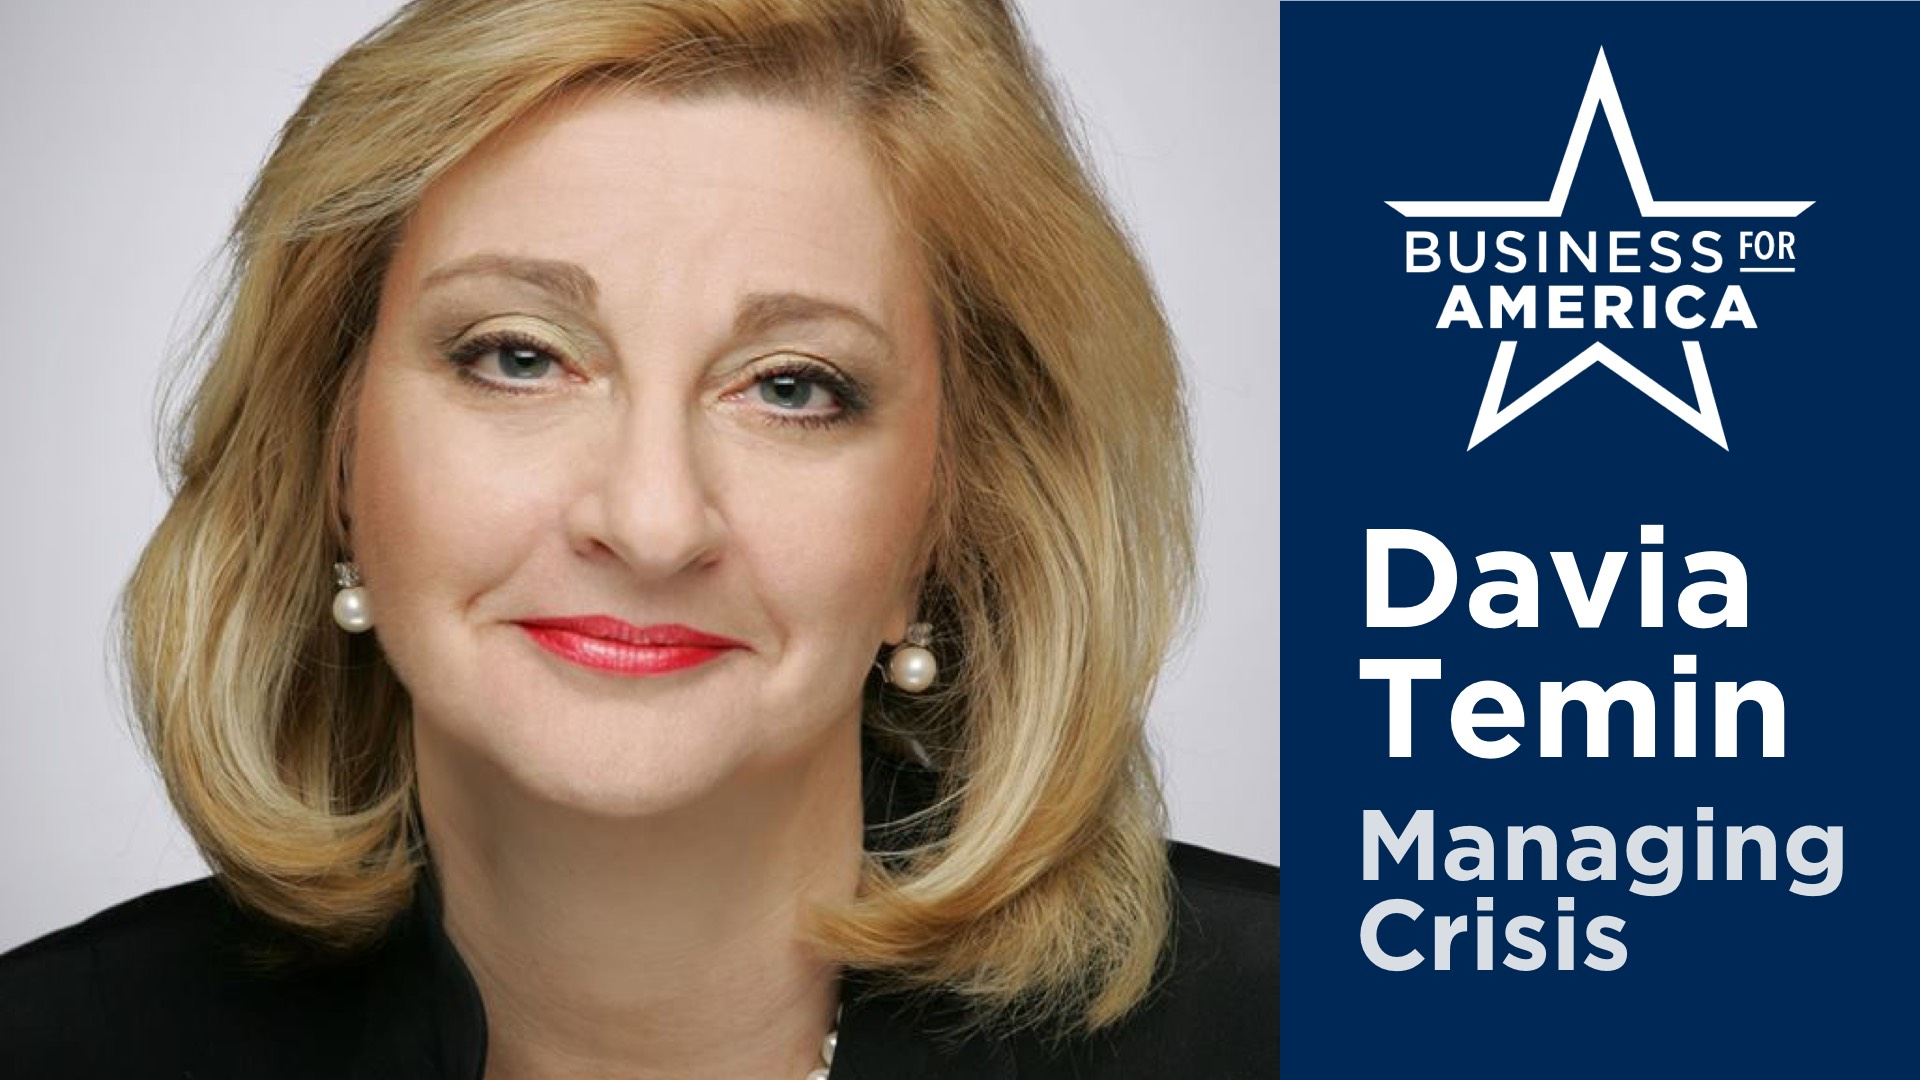 Davia Temin of Temin & Co. • Managing Crisis in an Era of Disruption